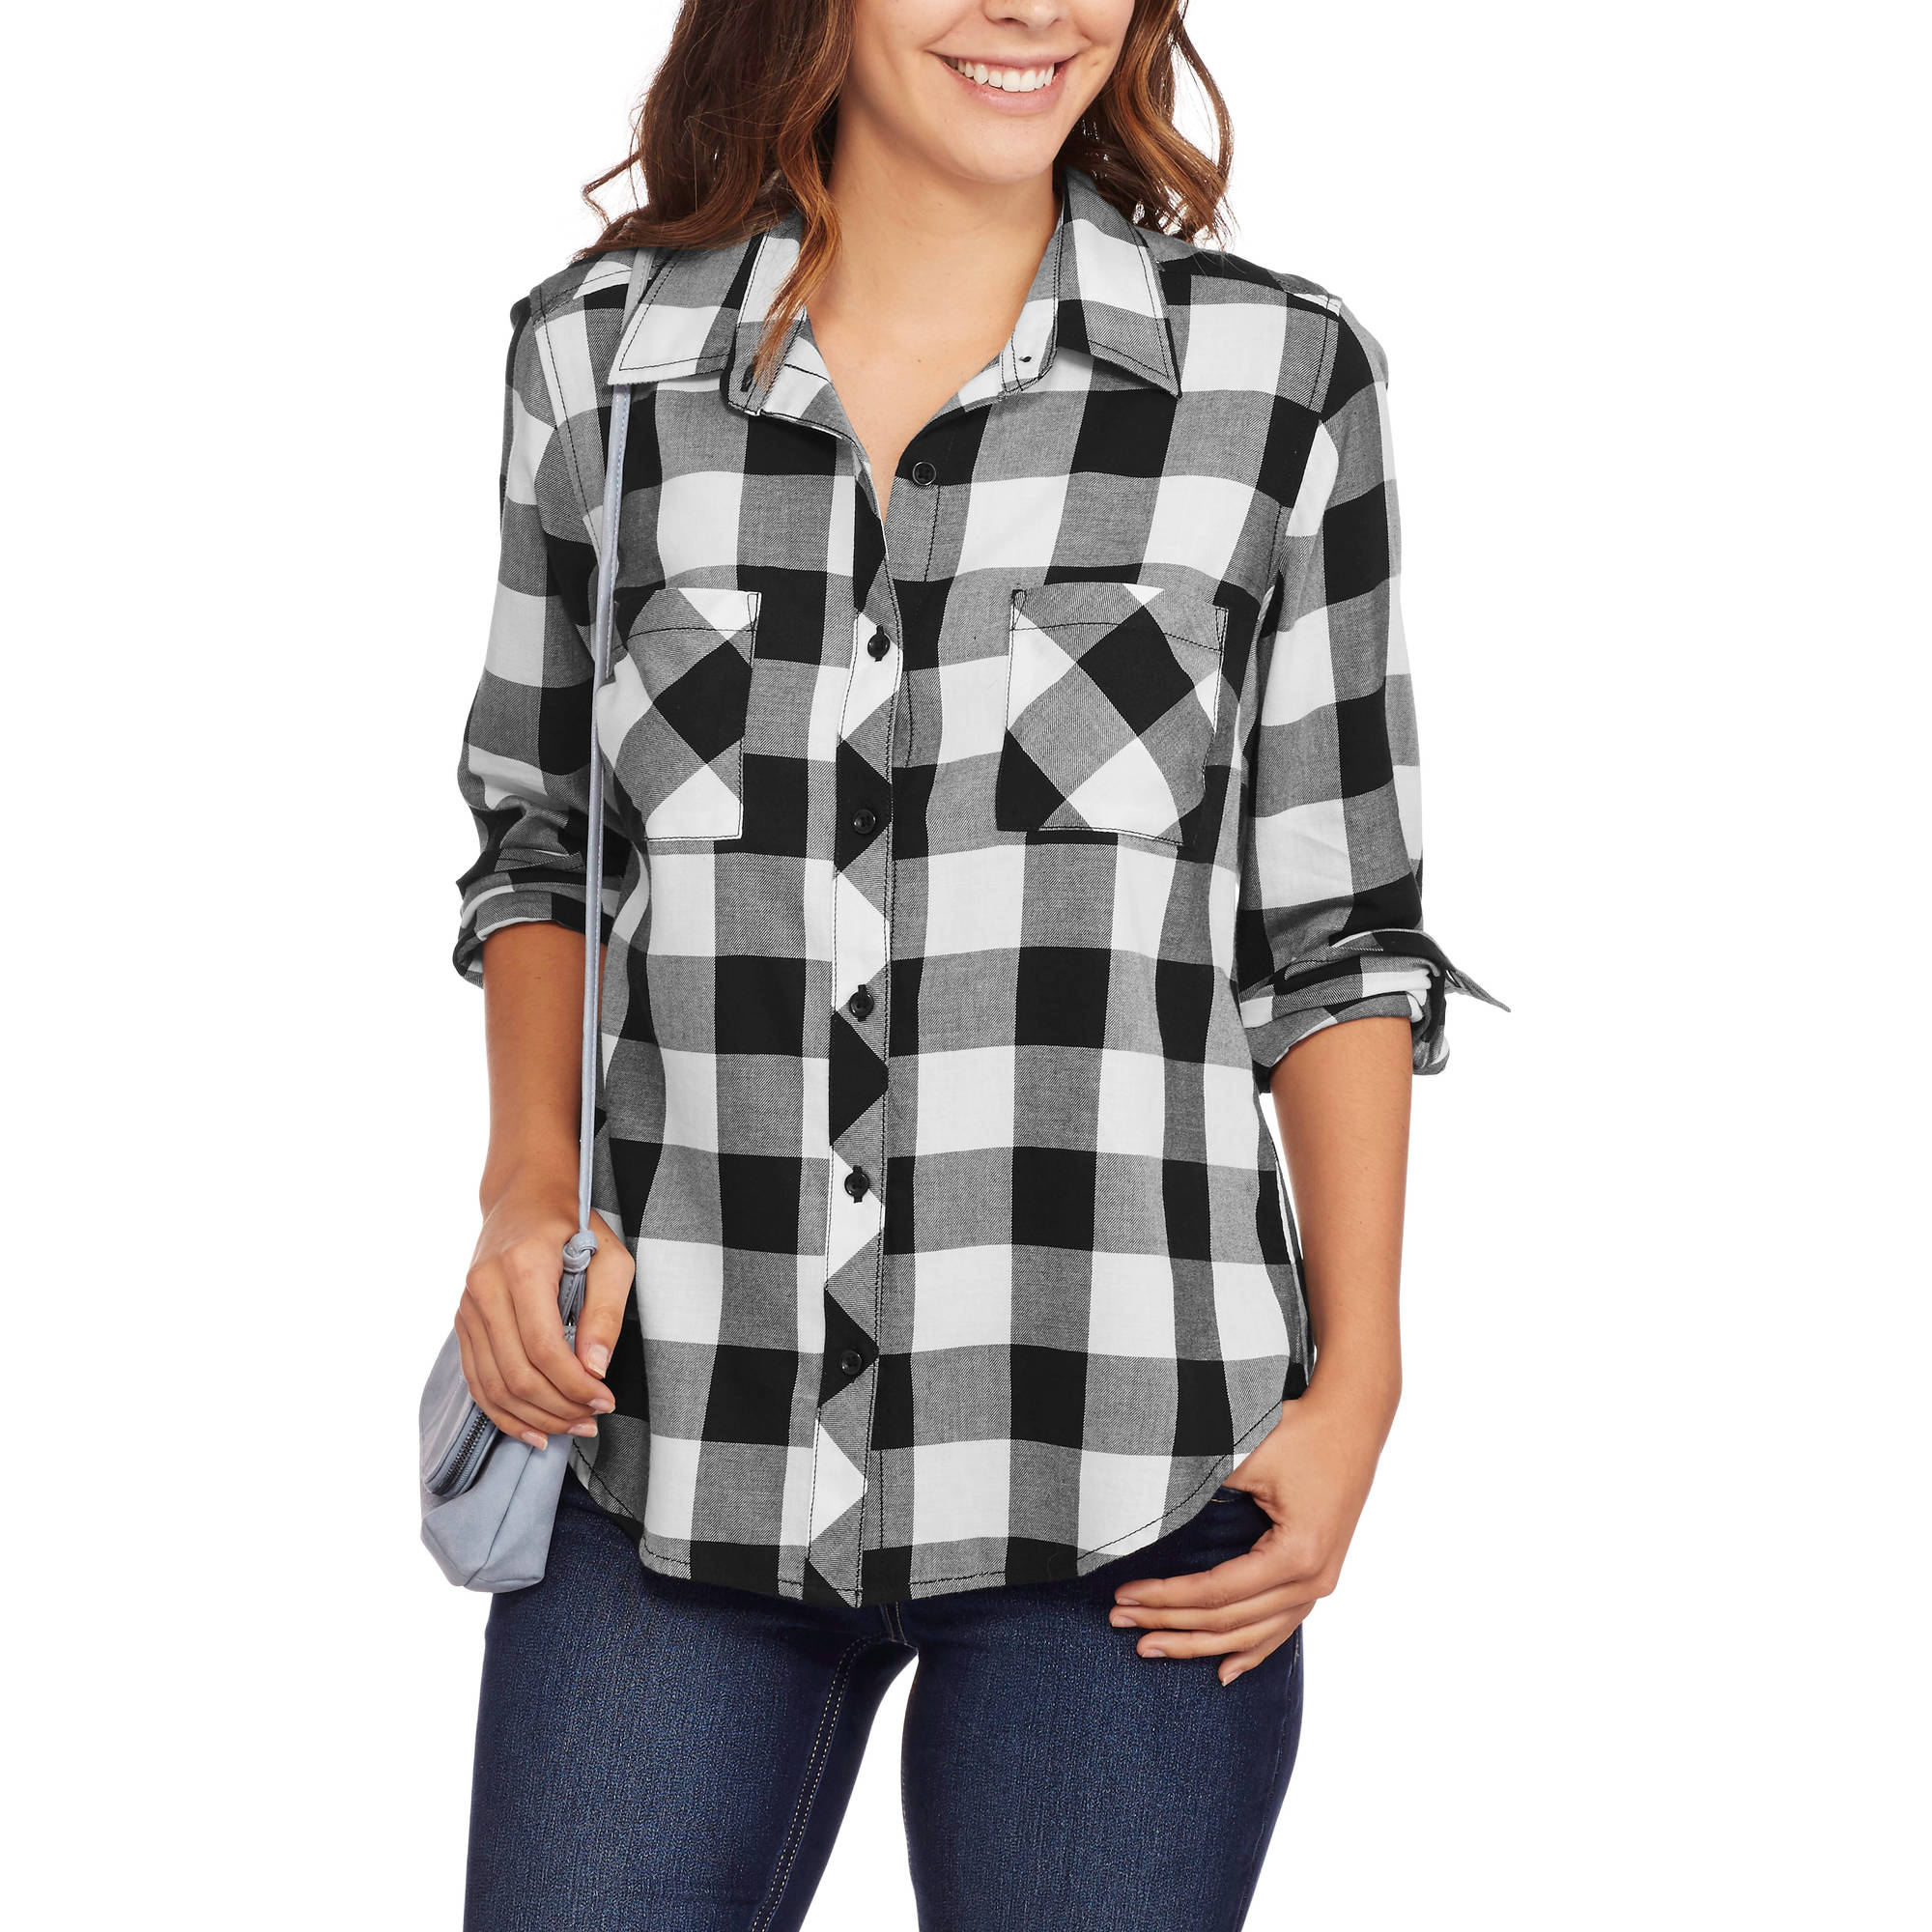 Faded Glory Women's Button Front Plaid Shirt